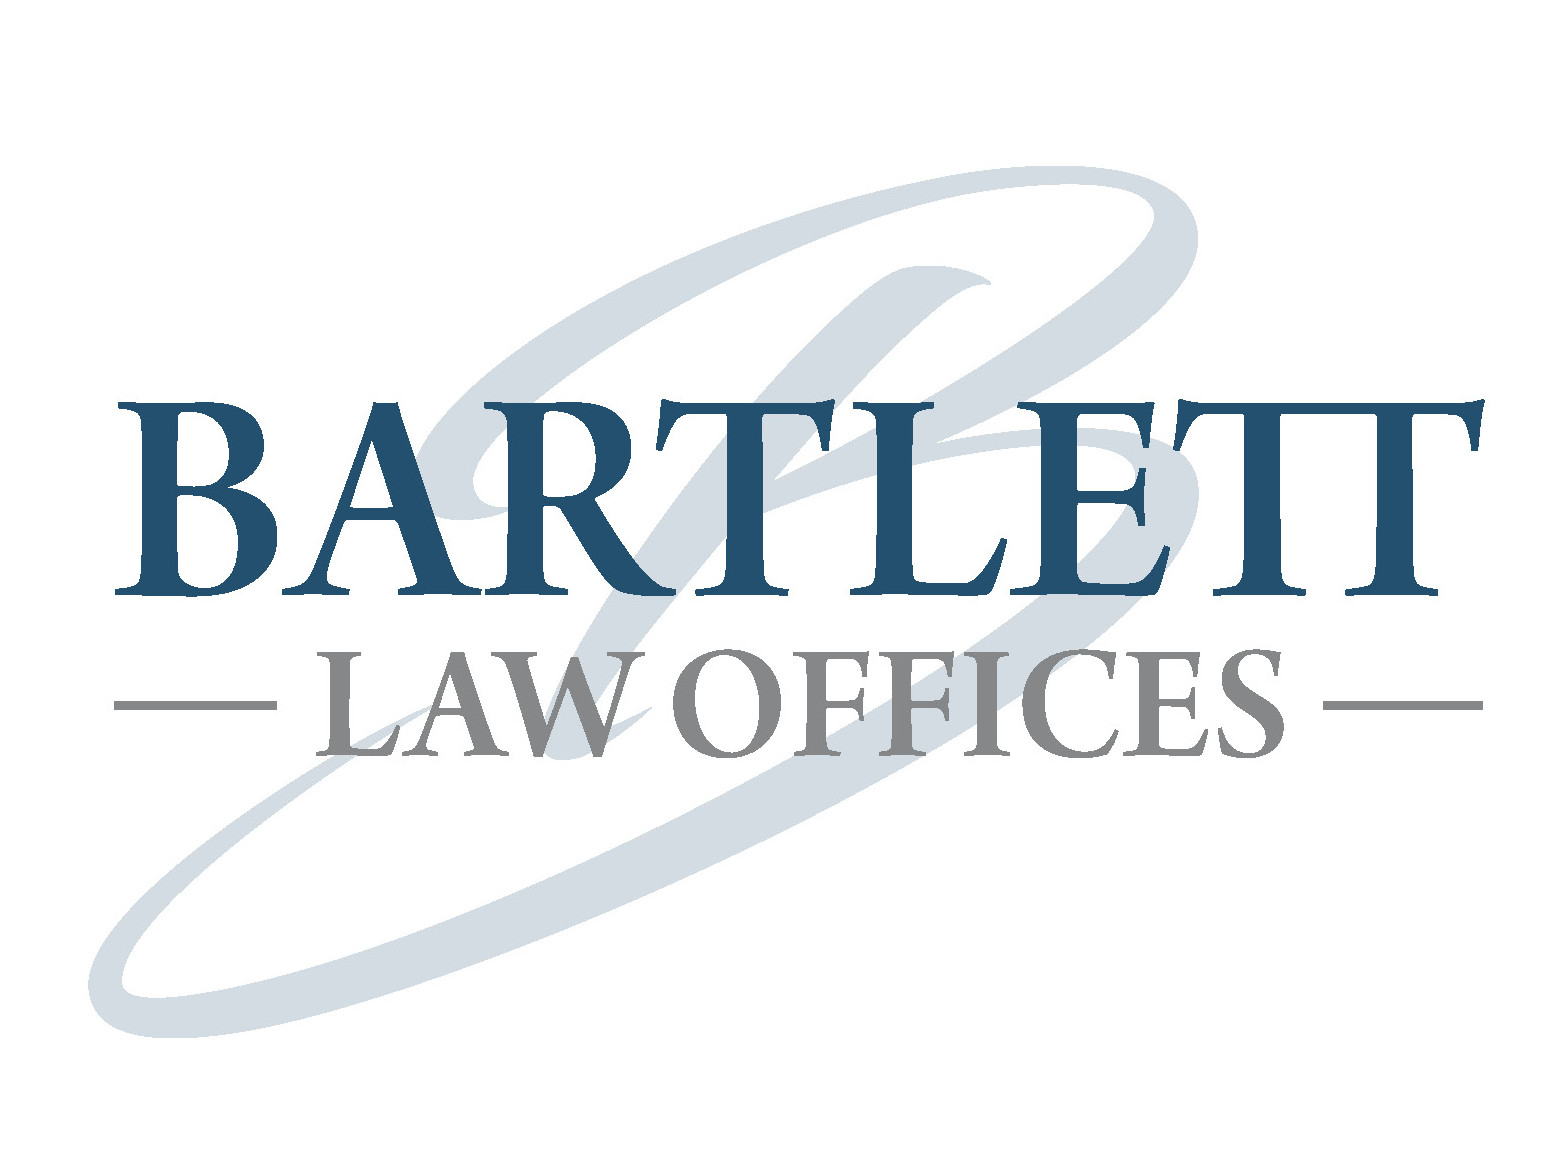 Bartlett Law Offices